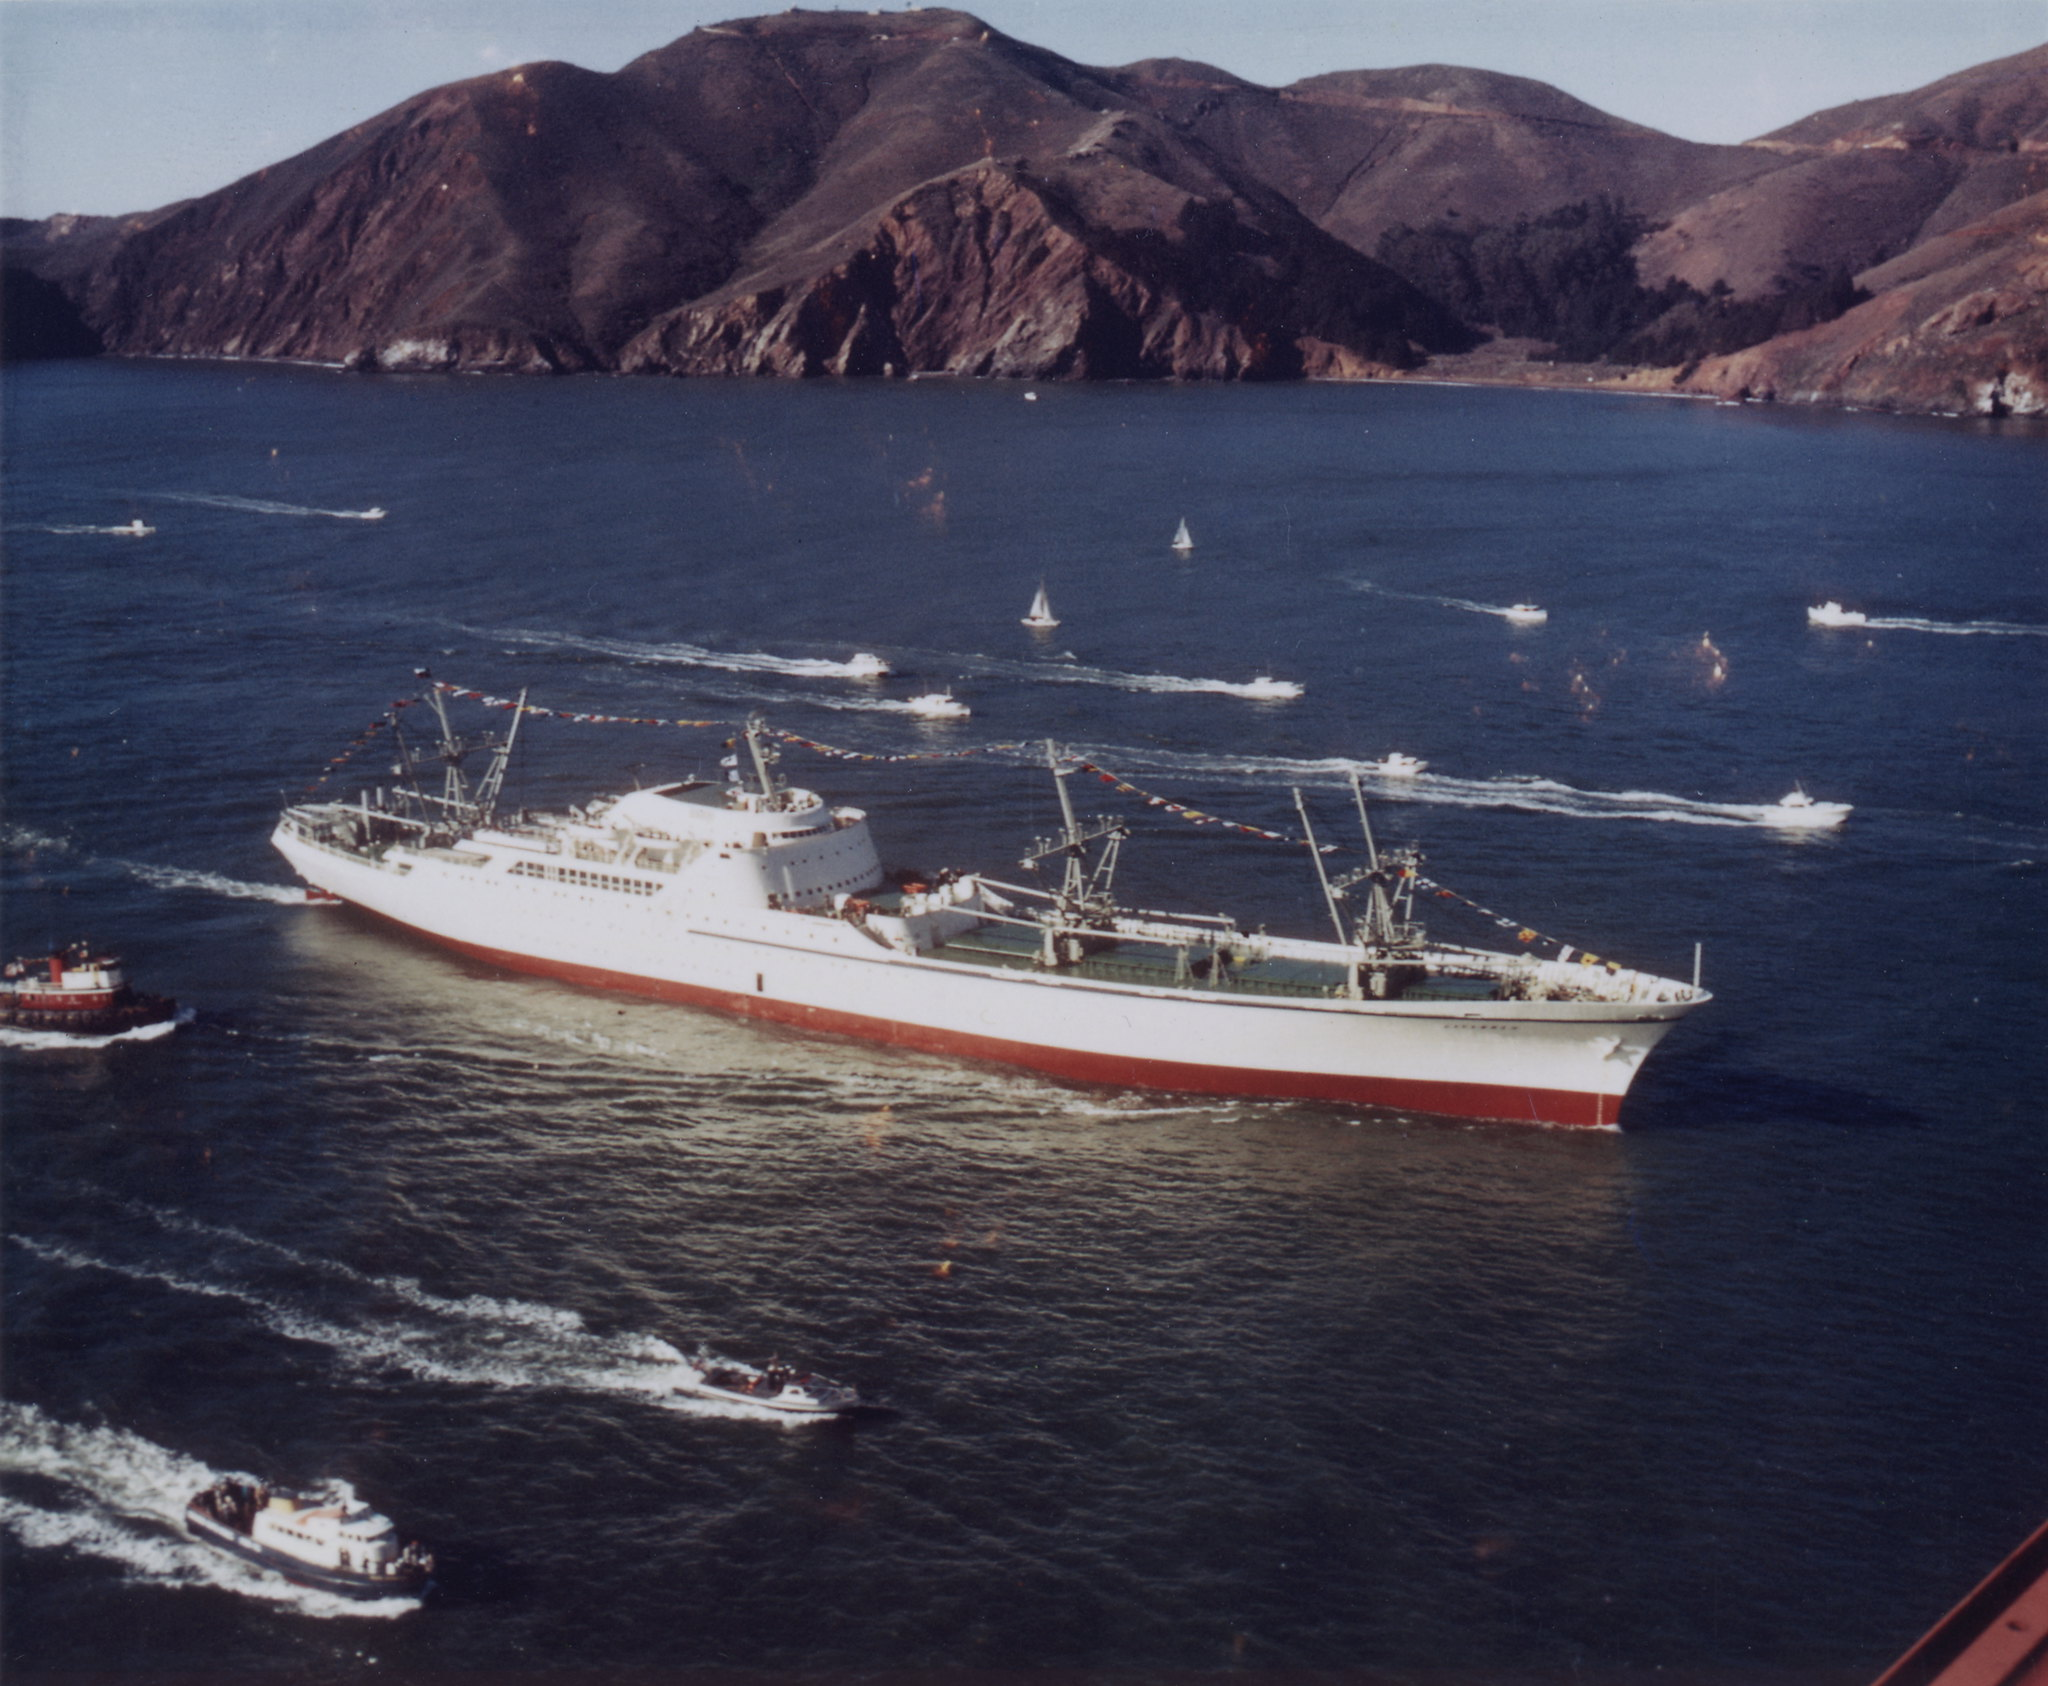 NS (Nuclear Ship) Savannah, the first commercial nuclear power cargo vessel, passing under San Francisco's Golden Gate Bridge enroute to the 1962 World's Fair in Seattle.